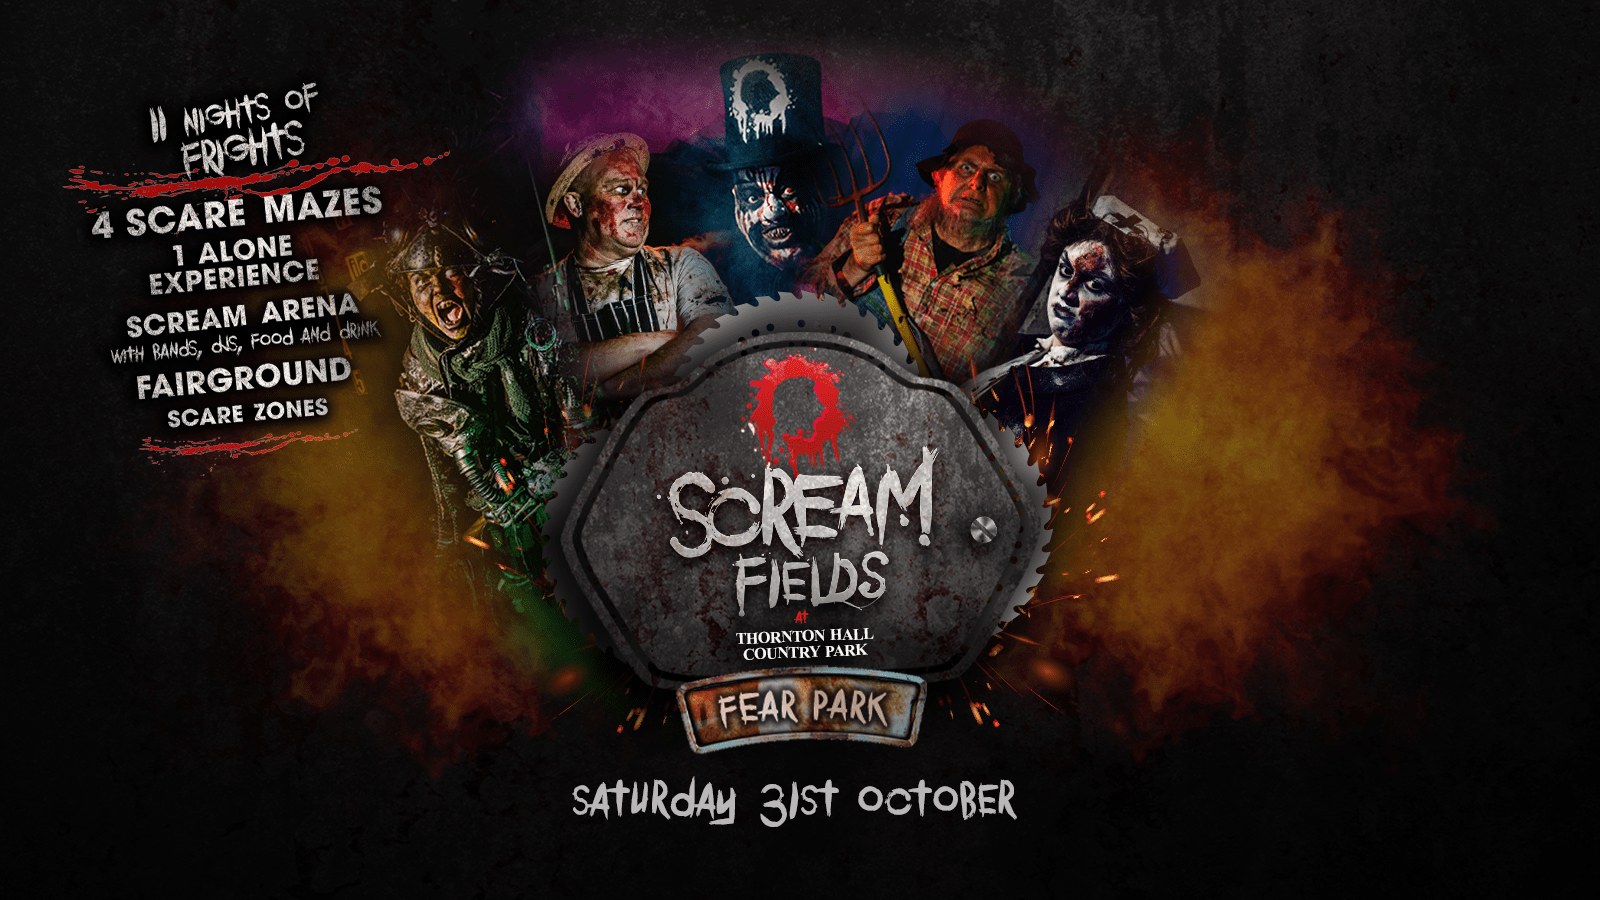 7.30PM – Screamfields: Saturday 31st October 2020